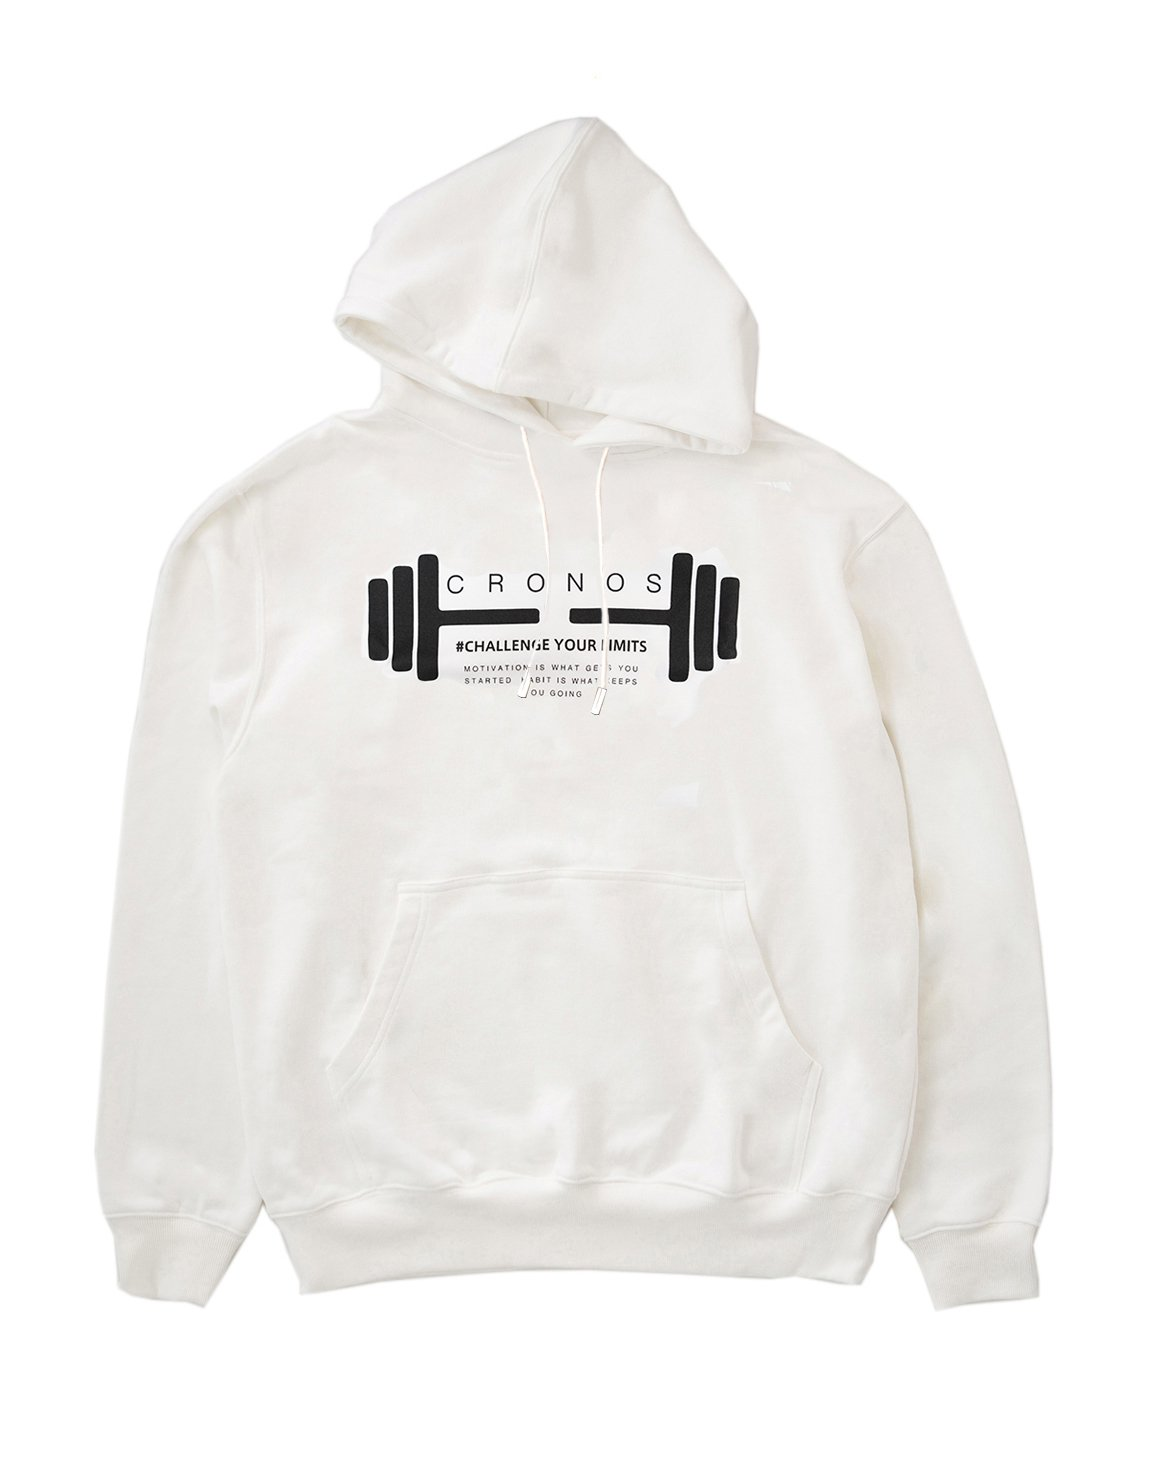 <img class='new_mark_img1' src='https://img.shop-pro.jp/img/new/icons55.gif' style='border:none;display:inline;margin:0px;padding:0px;width:auto;' />CRONOS DUMBBELL LOGO HOODY【WHITE】